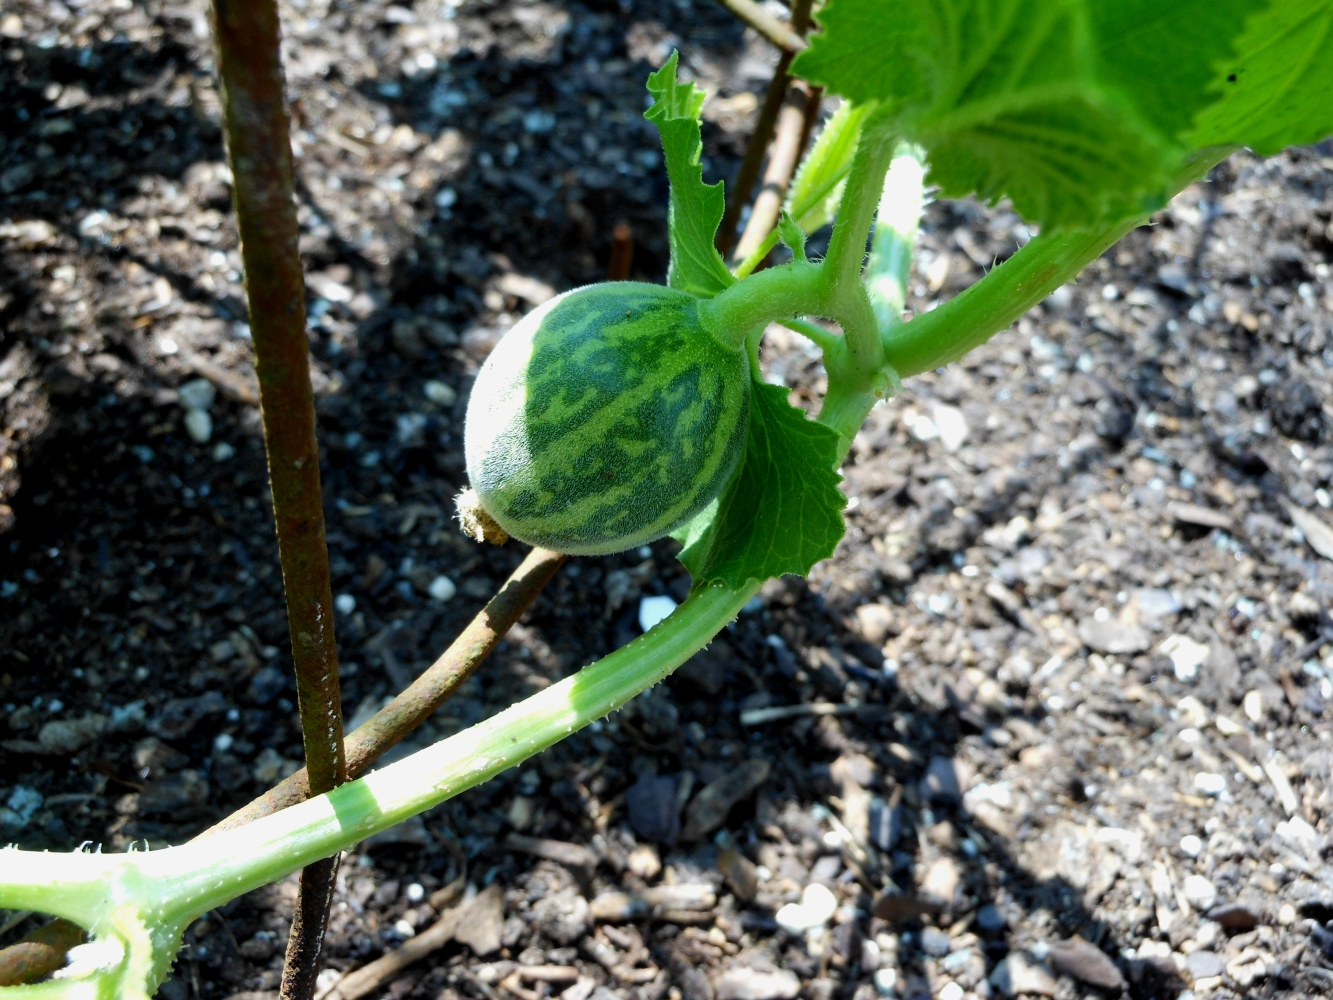 07-11-14_Just_Planted_Tigger_Melon_Plant_01